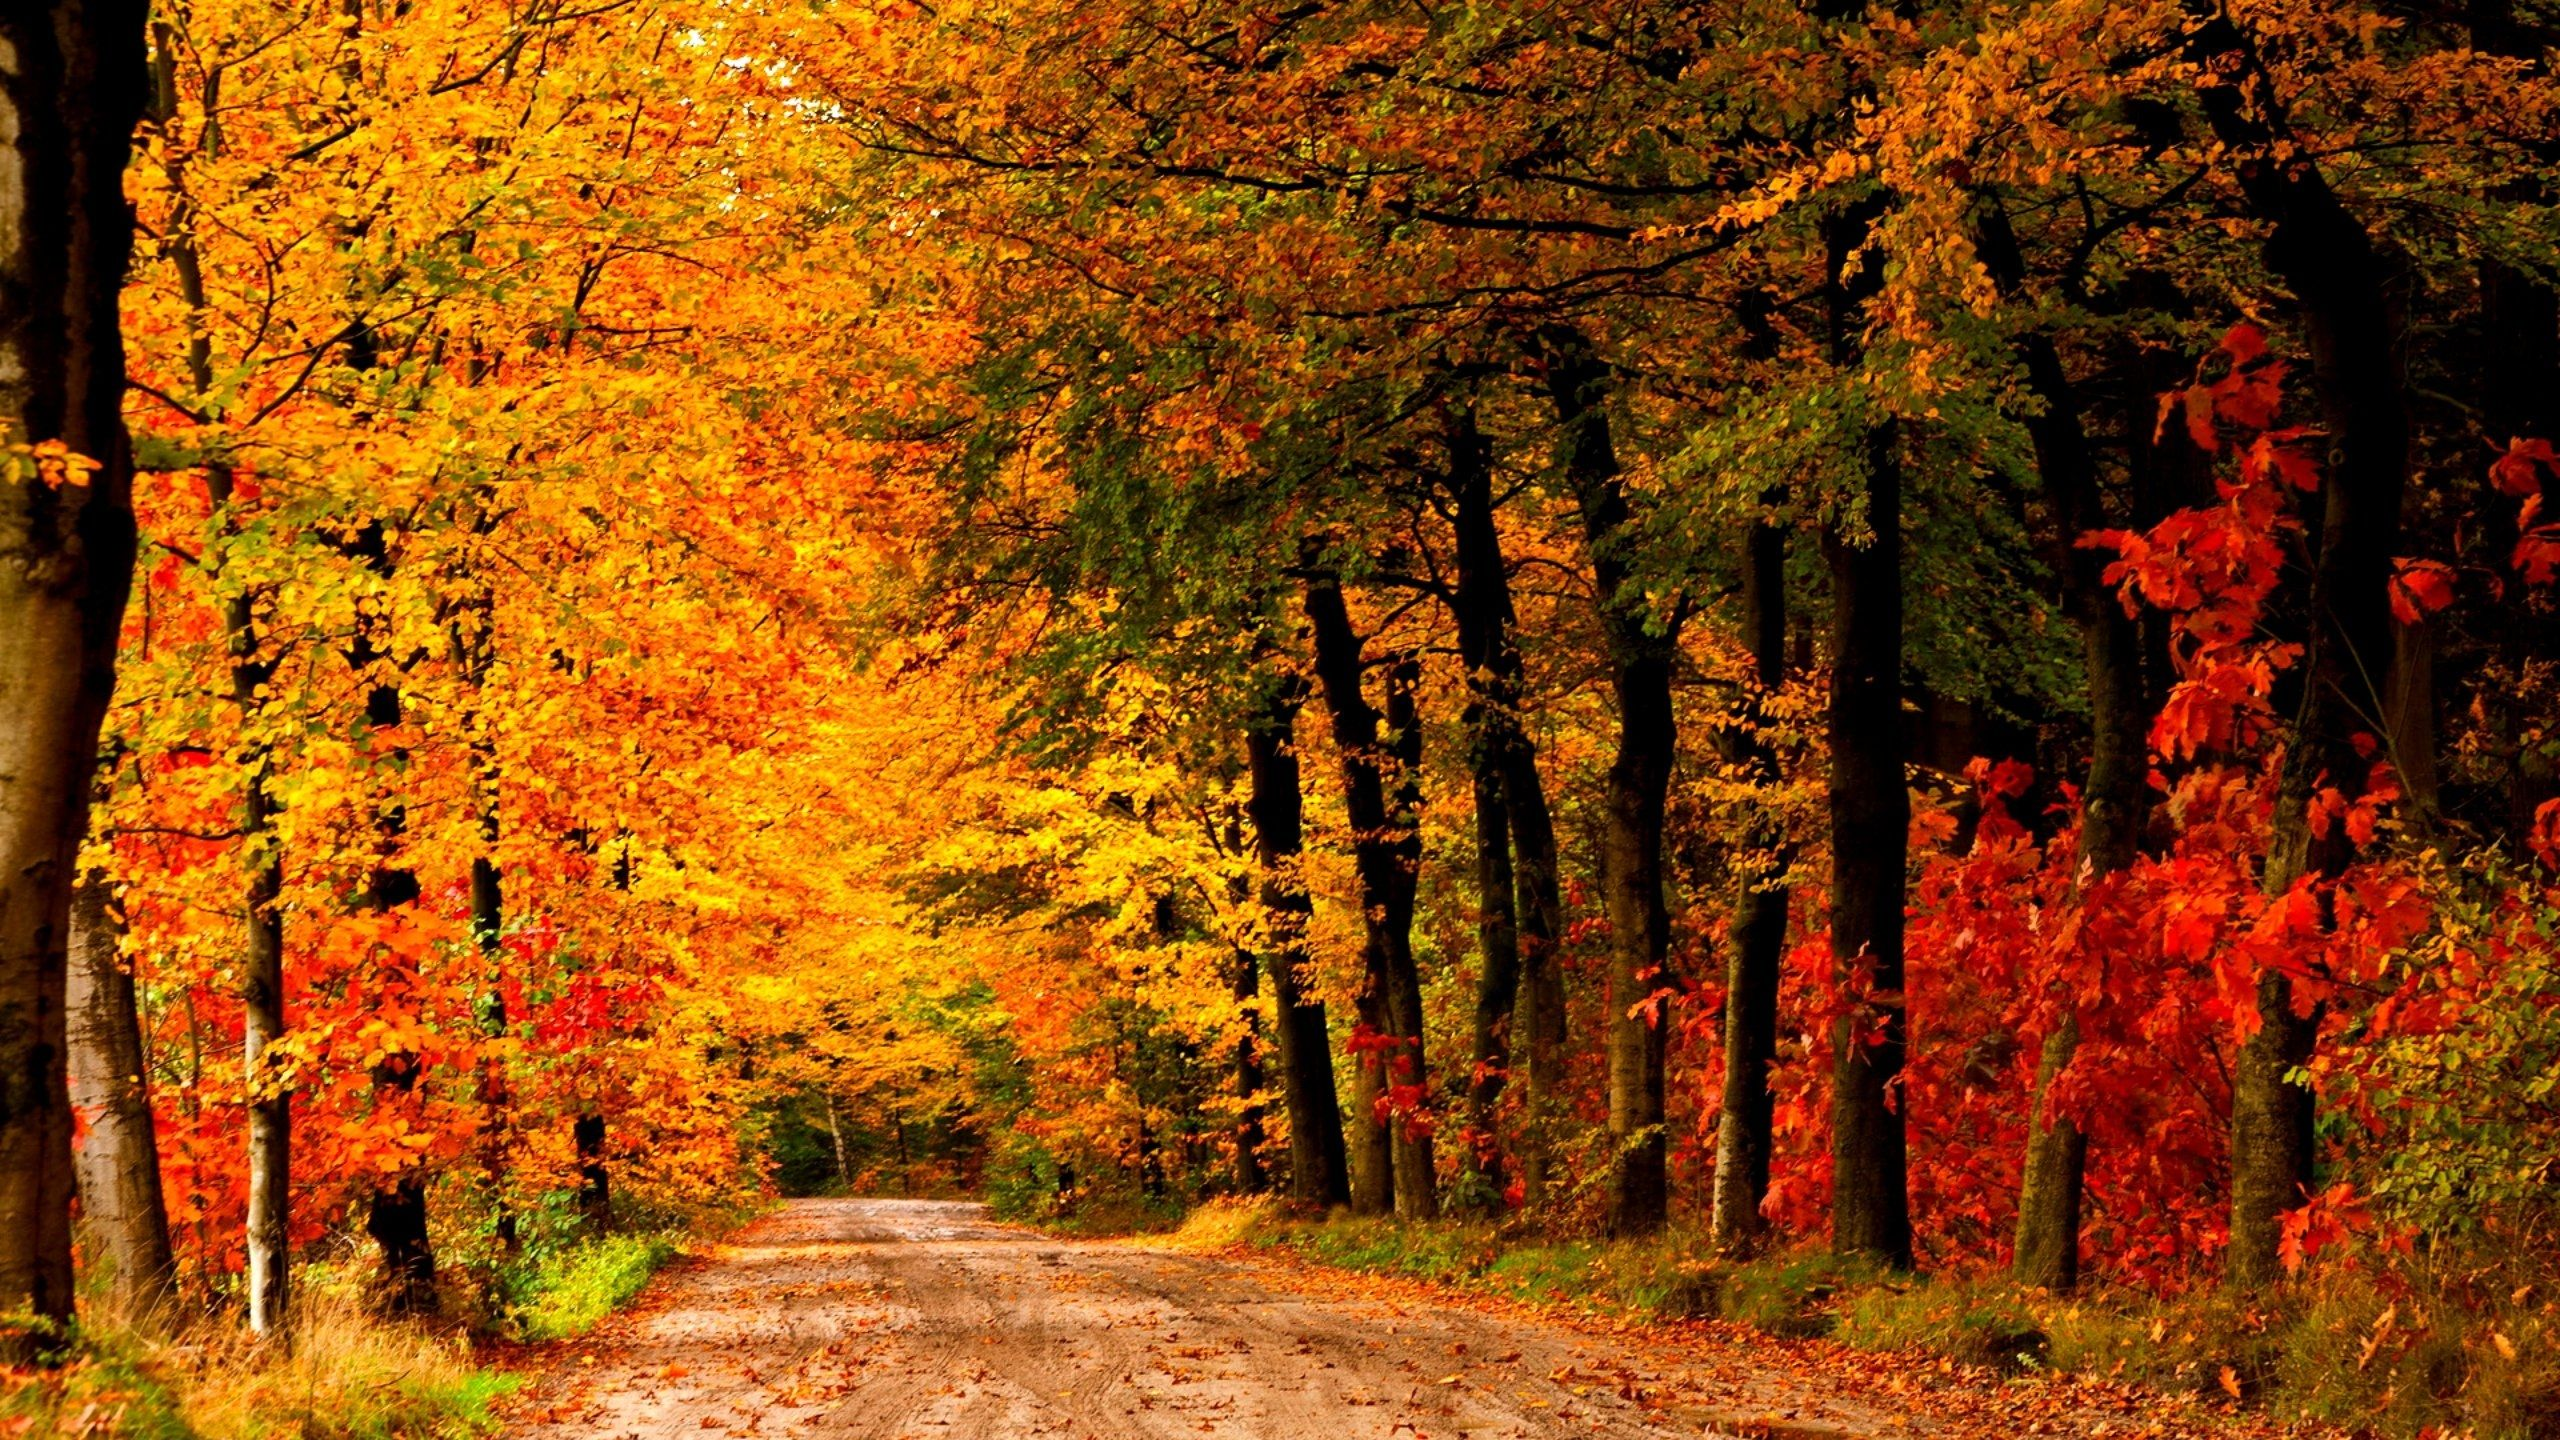 Country Road Autumn wallpaper in 2560x1440 resolution #autumnwallpaper